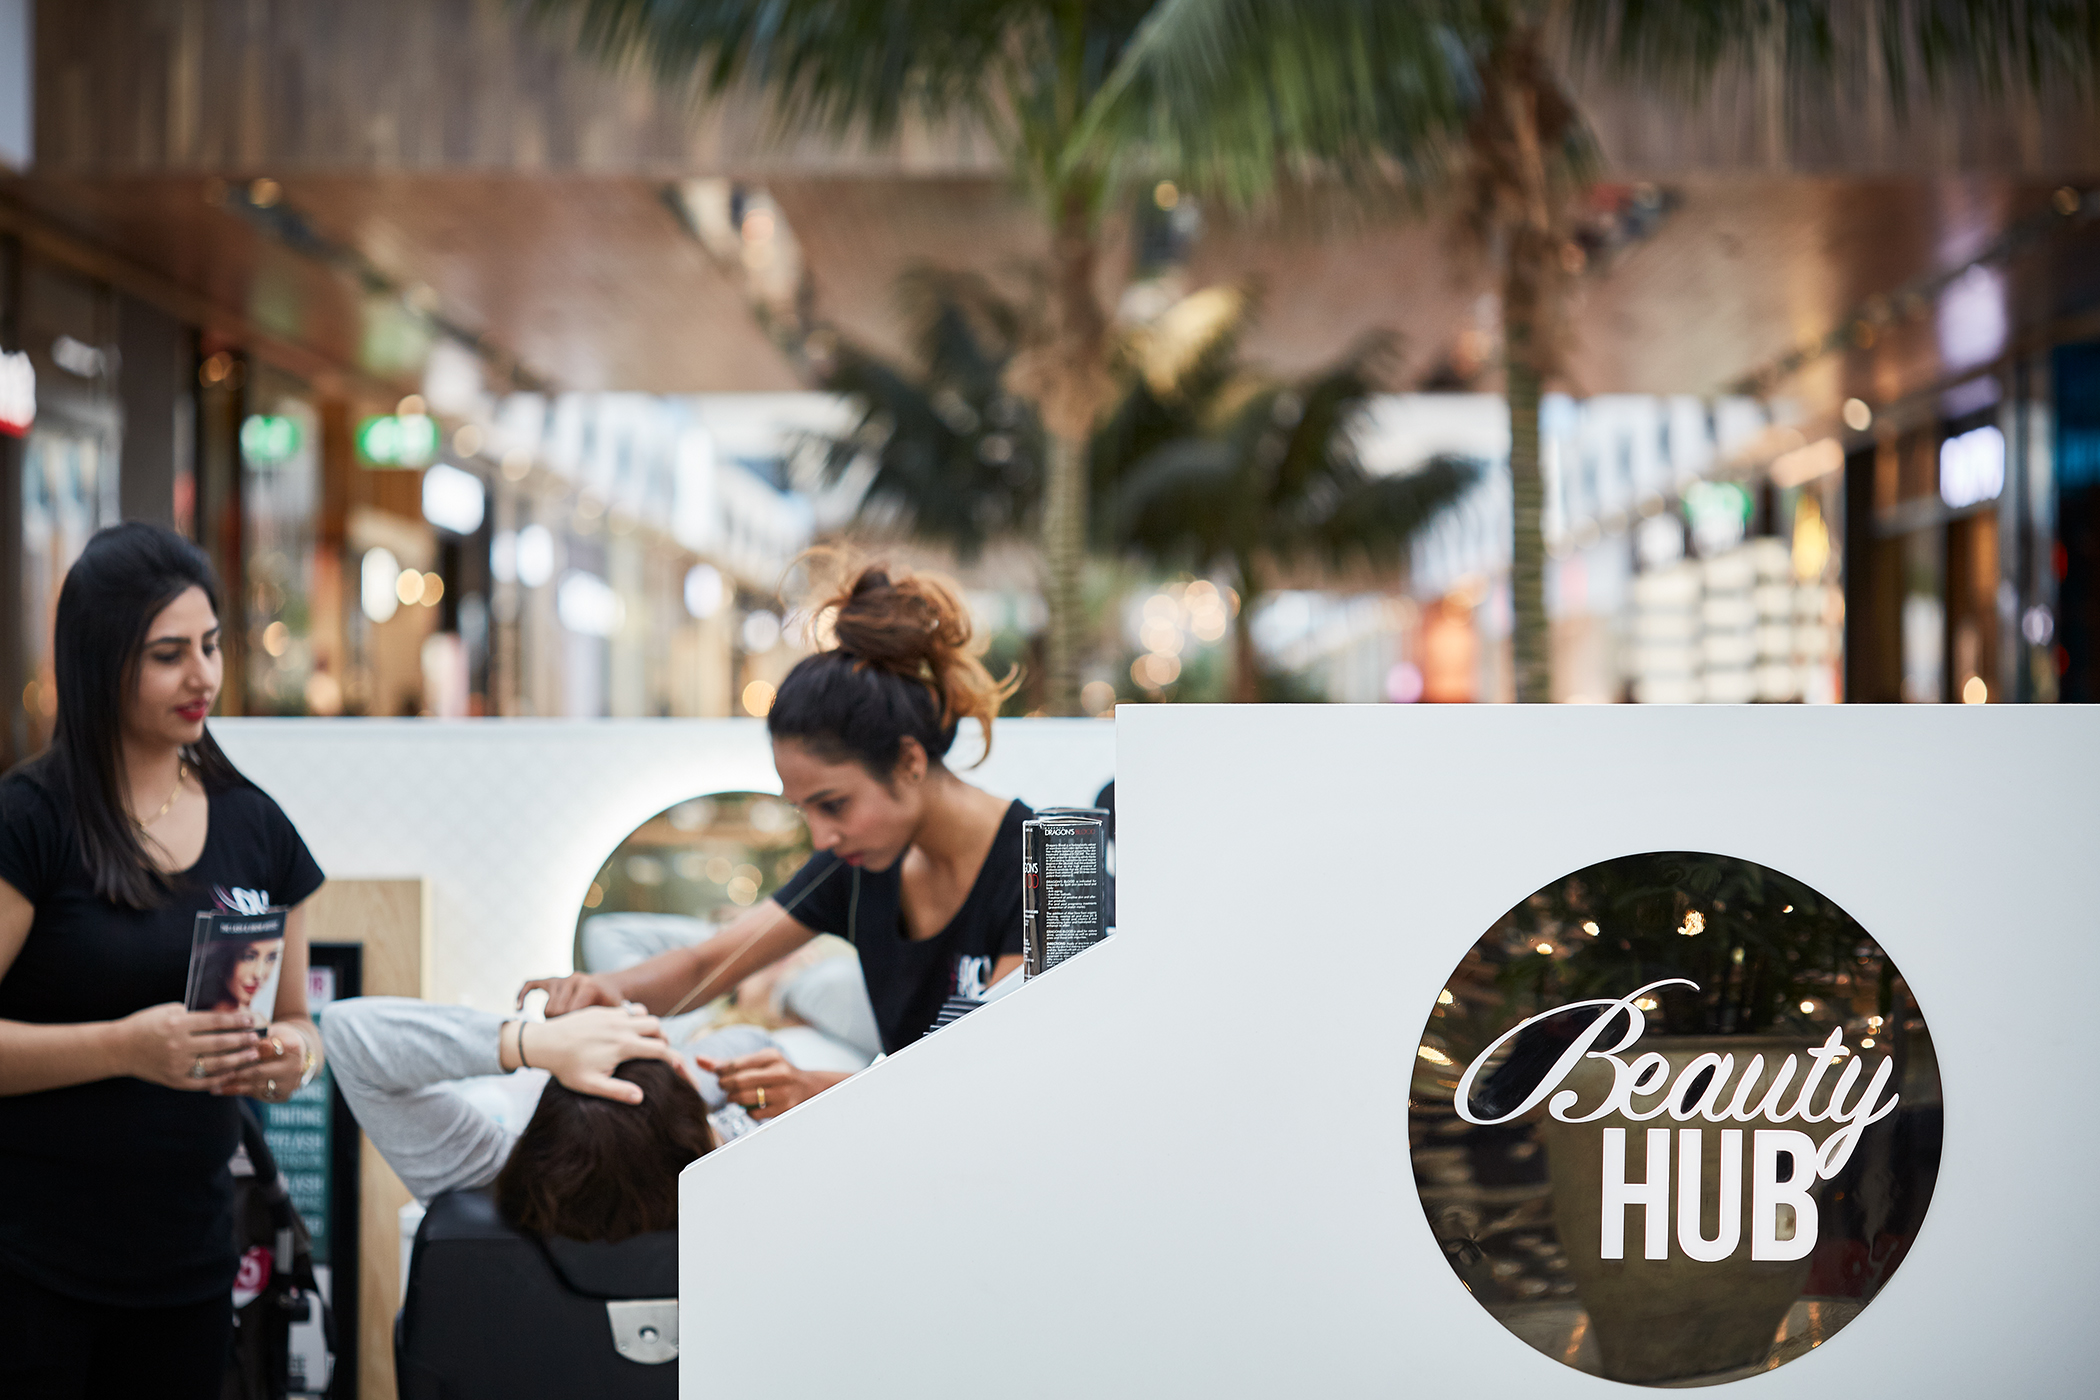 Beauty Hub Kiosk Design & Manufacture Westfield